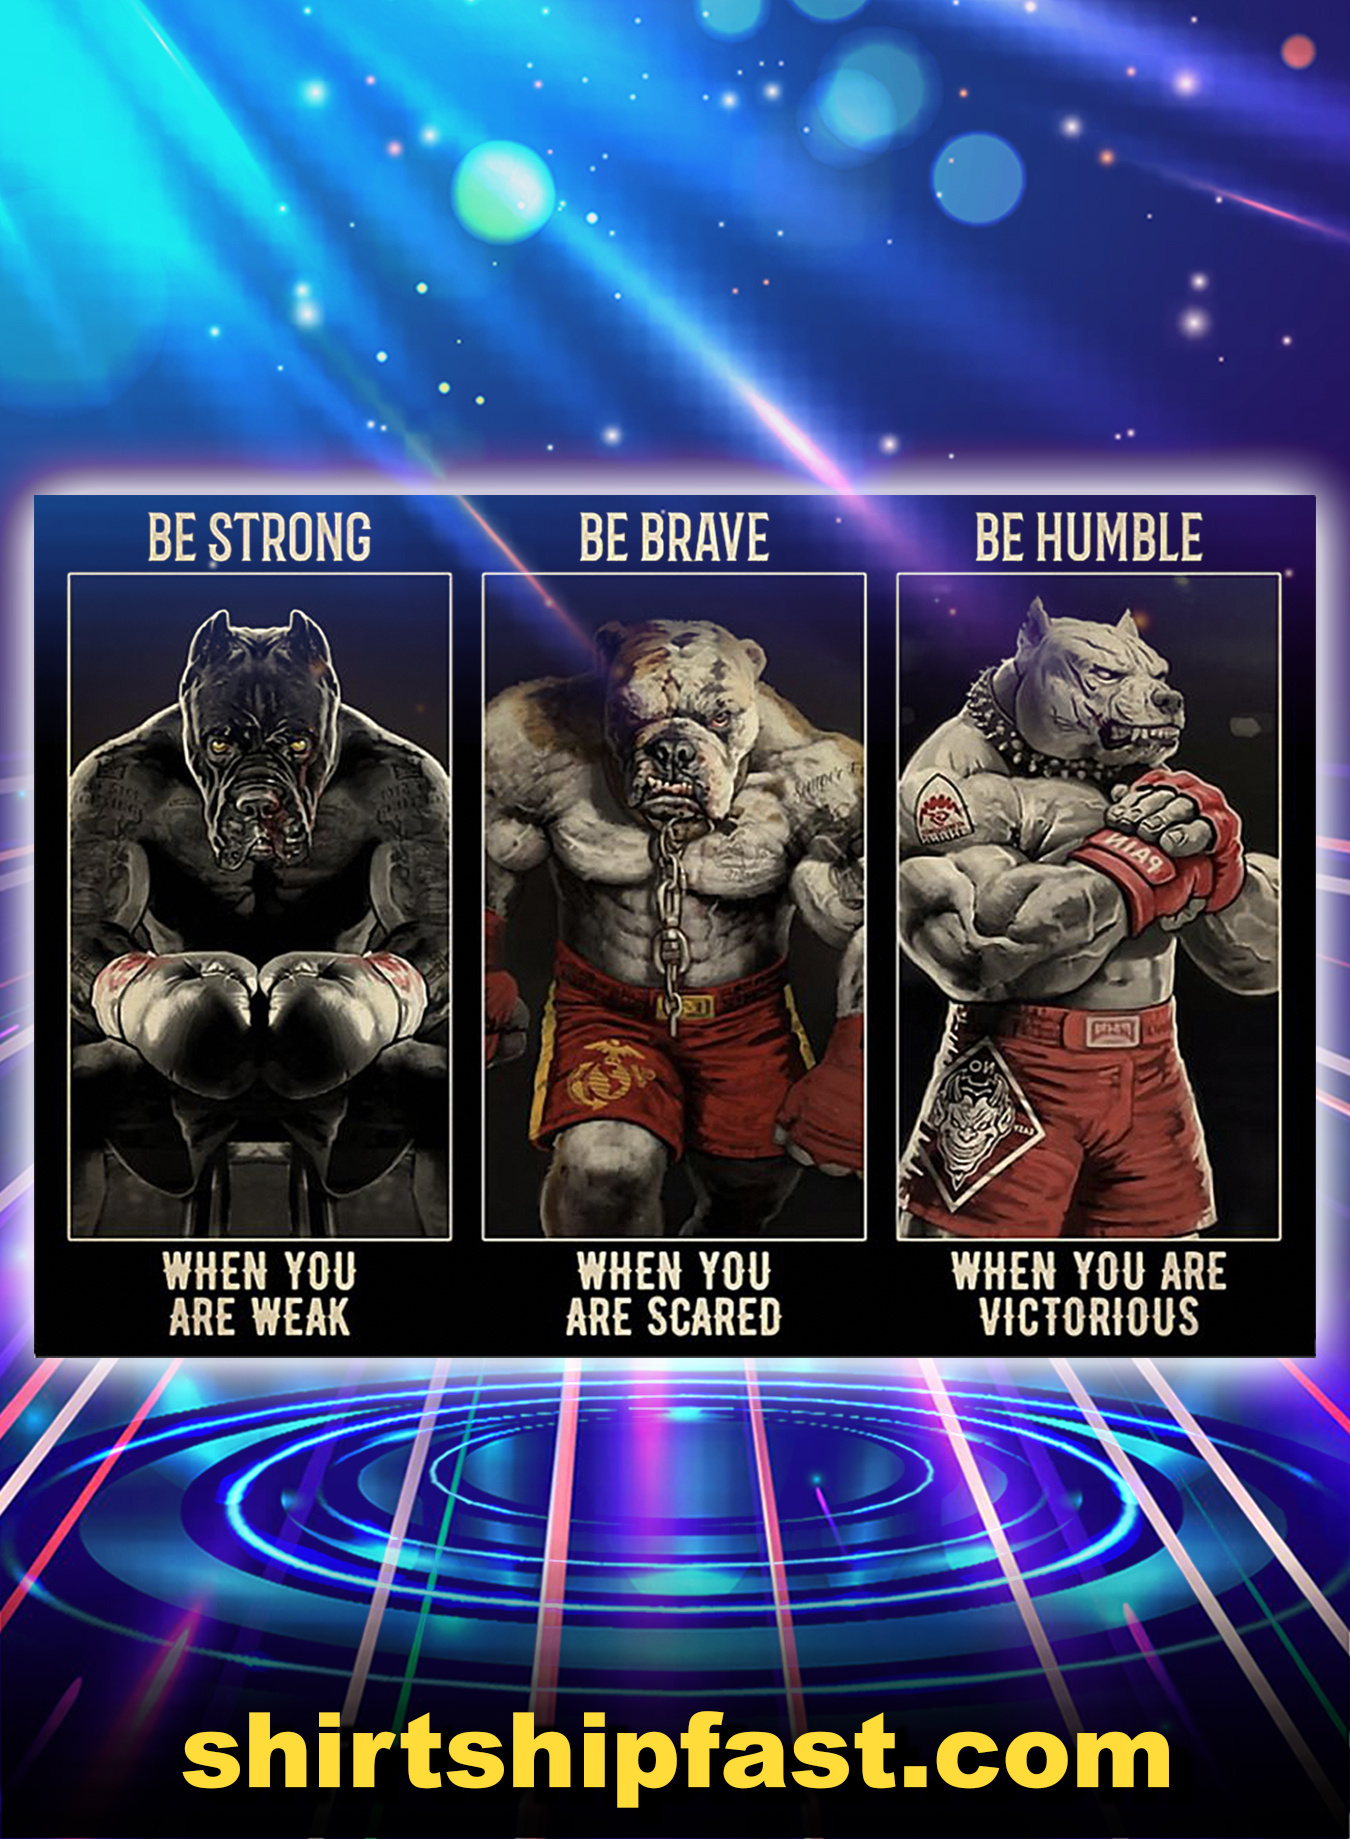 Pitbull boxing be strong be brave be humble poster - A3